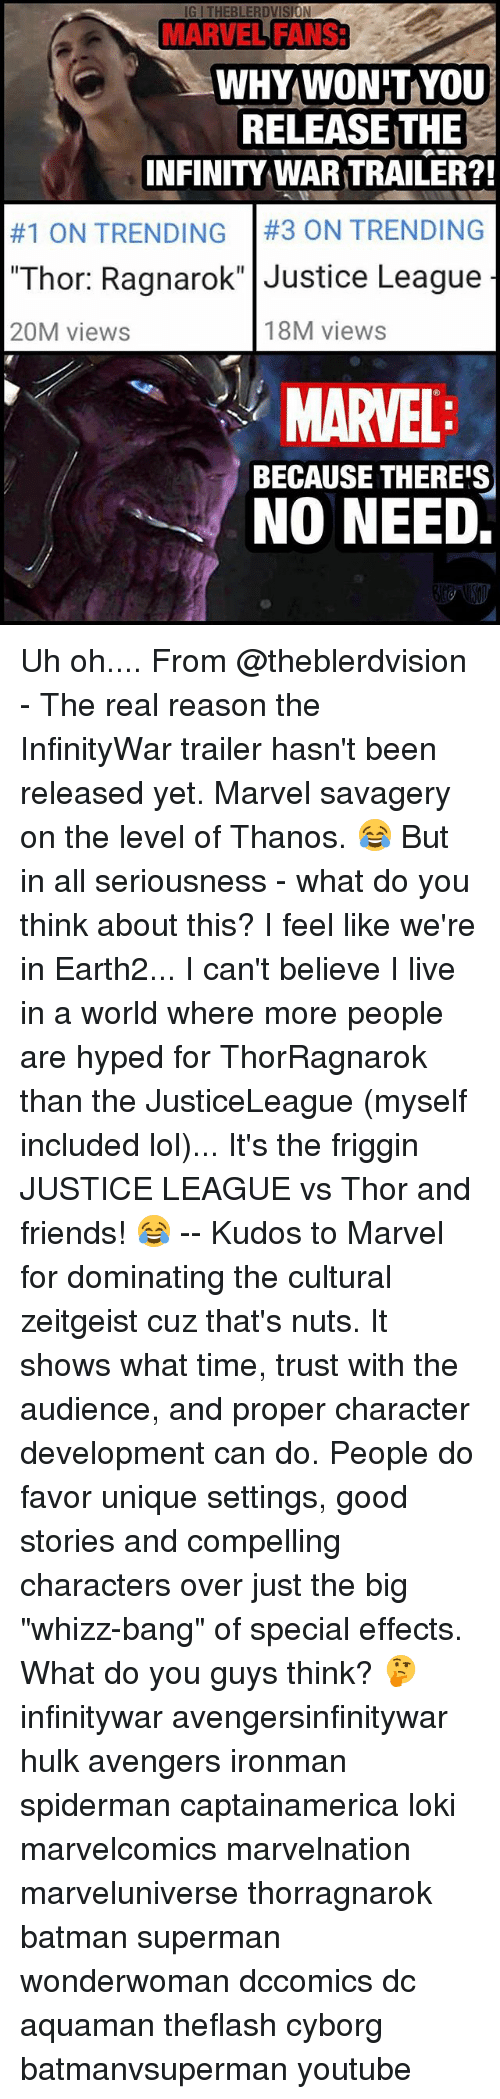 "Batman, Friends, and Lol: IG I THEBLERDVISION  MARVEL FANS3  MARVEL FANS  WHYWON'TYoU  RELEASE THE  INFINITY WAR TRAILER?!  #1 ON TRENDING | #3 ON TRENDING  ""Thor: Ragnarok"" Justice League  20M views  18M views  MARVEL  NO NEED  BECAUSE THERE'S Uh oh.... From @theblerdvision - The real reason the InfinityWar trailer hasn't been released yet. Marvel savagery on the level of Thanos. 😂 But in all seriousness - what do you think about this? I feel like we're in Earth2... I can't believe I live in a world where more people are hyped for ThorRagnarok than the JusticeLeague (myself included lol)... It's the friggin JUSTICE LEAGUE vs Thor and friends! 😂 -- Kudos to Marvel for dominating the cultural zeitgeist cuz that's nuts. It shows what time, trust with the audience, and proper character development can do. People do favor unique settings, good stories and compelling characters over just the big ""whizz-bang"" of special effects. What do you guys think? 🤔 infinitywar avengersinfinitywar hulk avengers ironman spiderman captainamerica loki marvelcomics marvelnation marveluniverse thorragnarok batman superman wonderwoman dccomics dc aquaman theflash cyborg batmanvsuperman youtube"